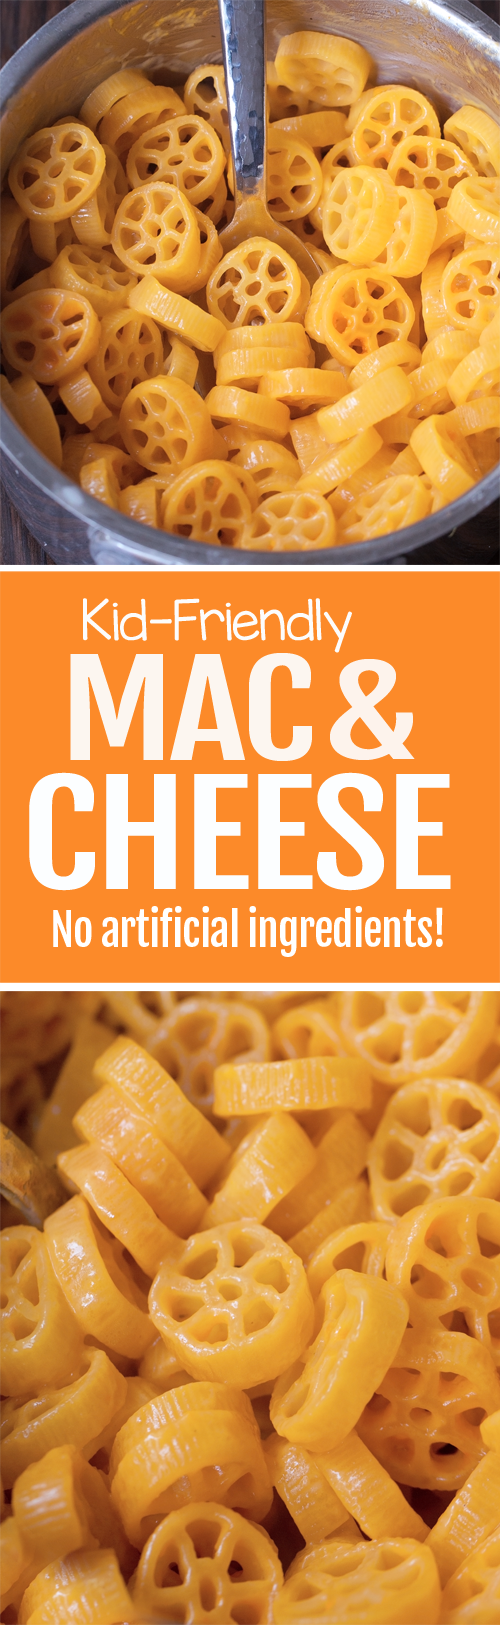 This much healthier alternative to boxed mac and cheese has none of the artificial colors and harmful food dyes in the Kraft version